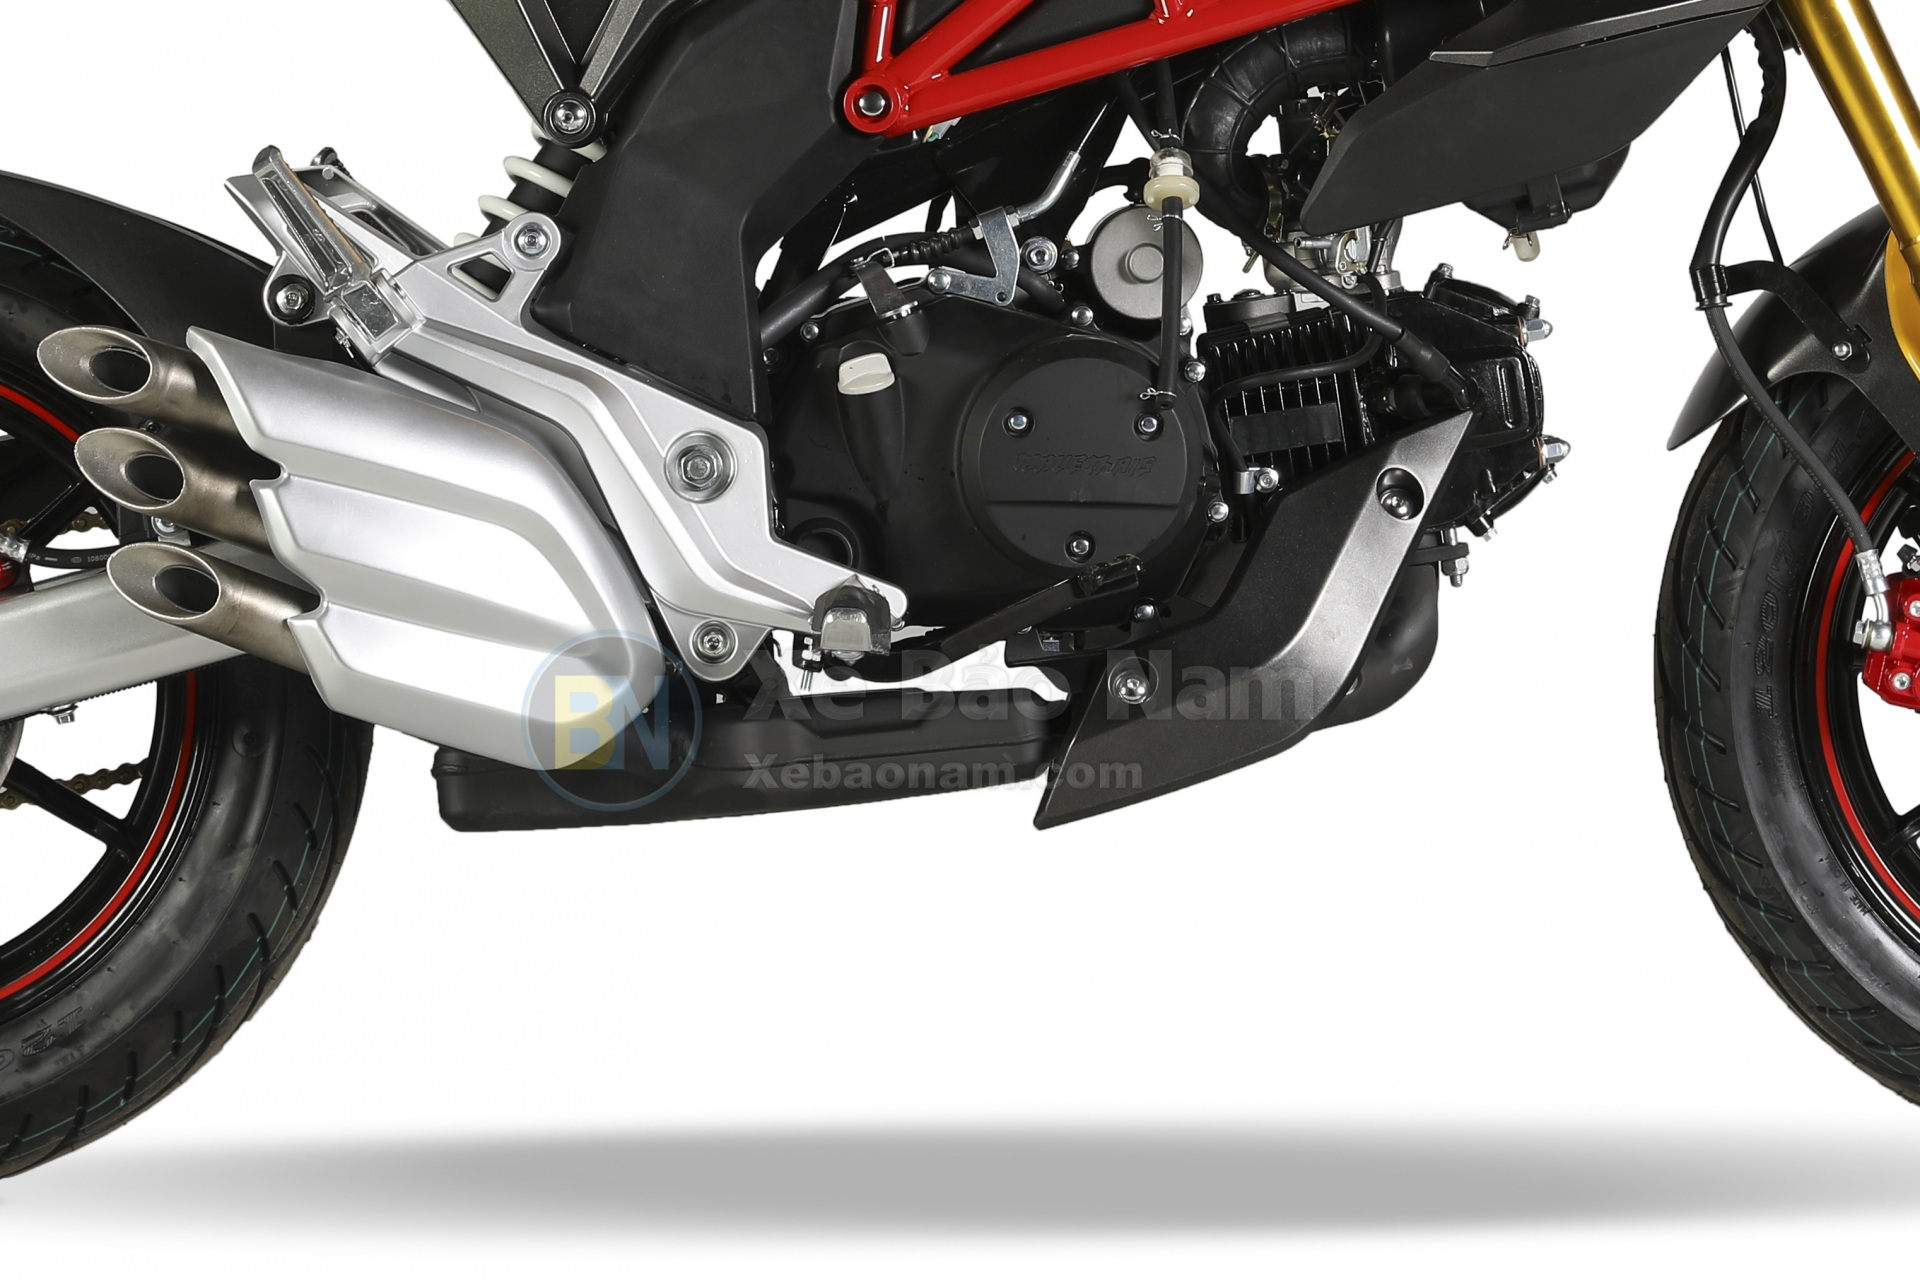 xe-may-mv-agusta-mini-110-new-xebaonam-3